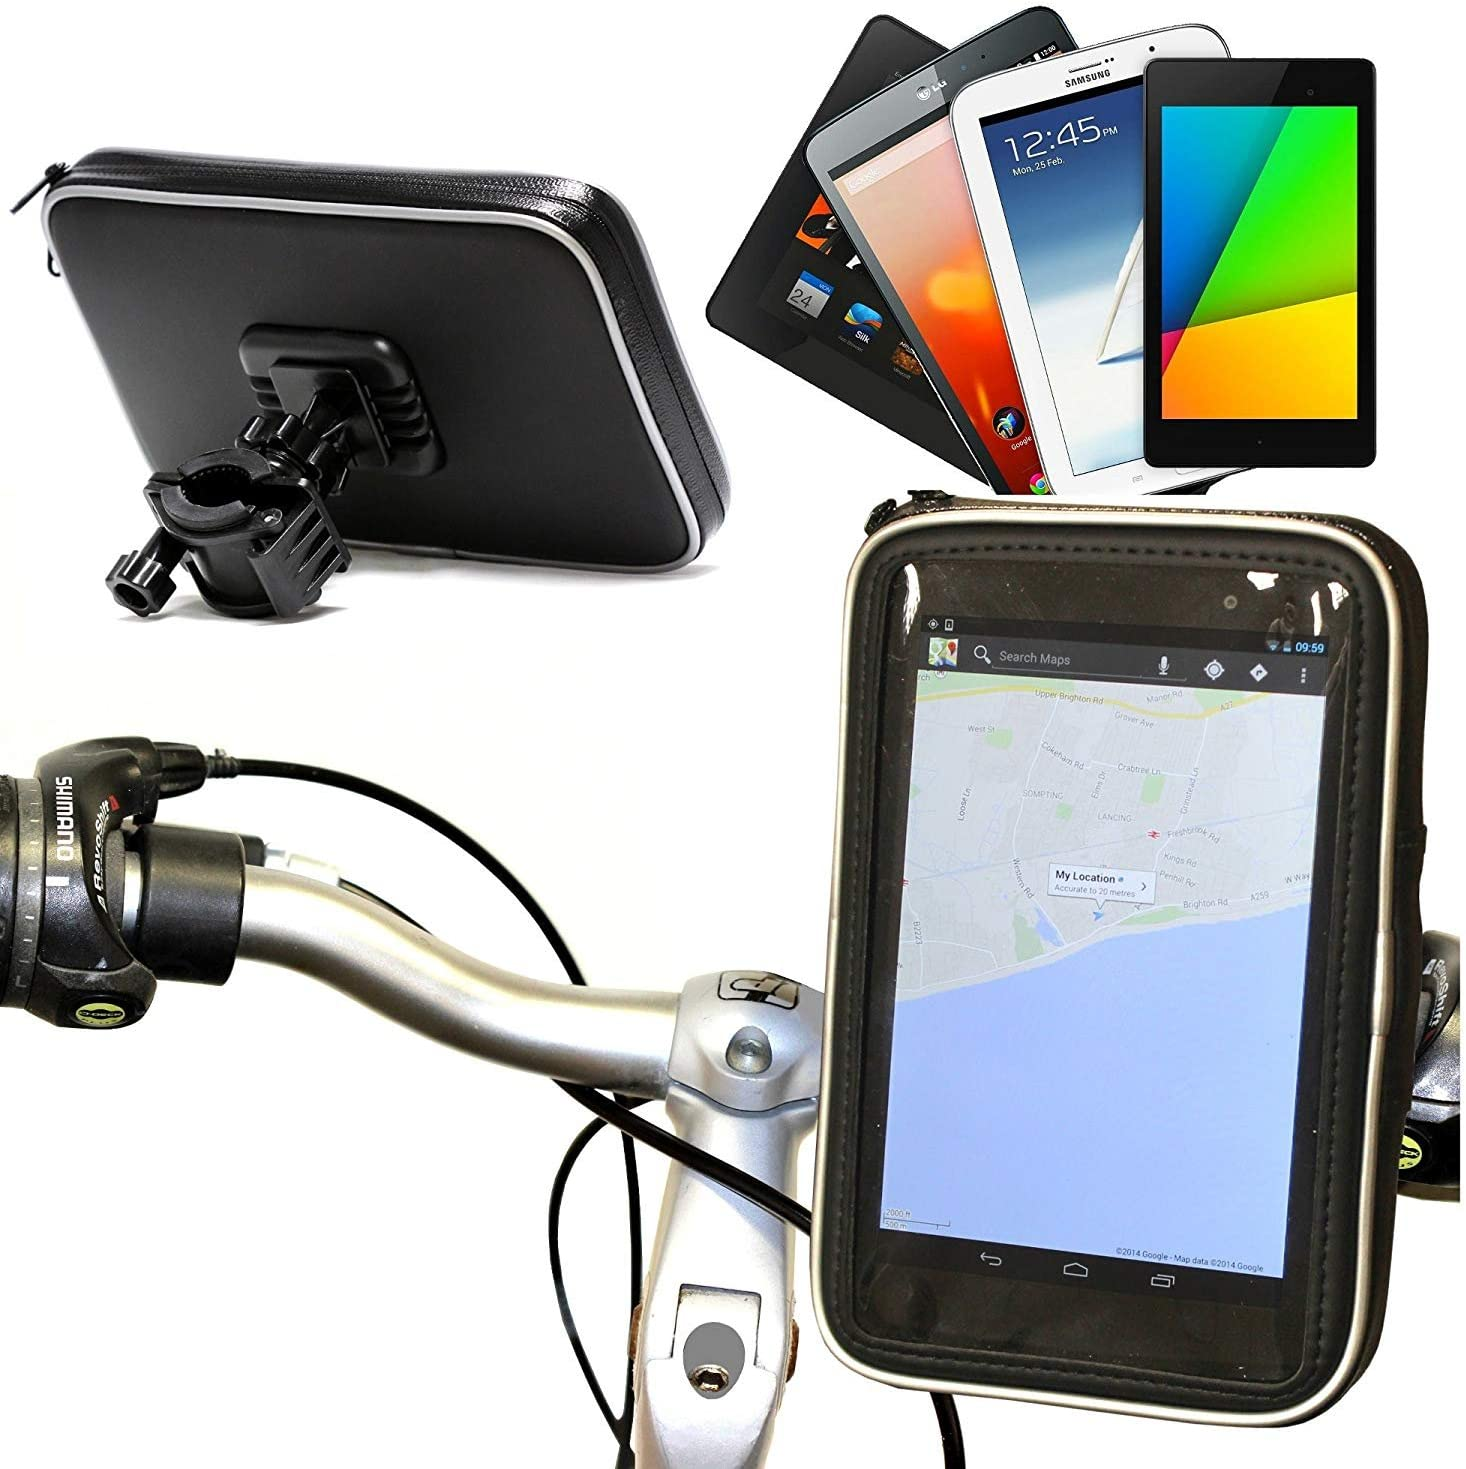 Navitech Cycle/Bike/Bicycle Waterproof Holder Mount and Case Compatible with The Acer ICONIA B1-790-K732 7-Inch Tablet